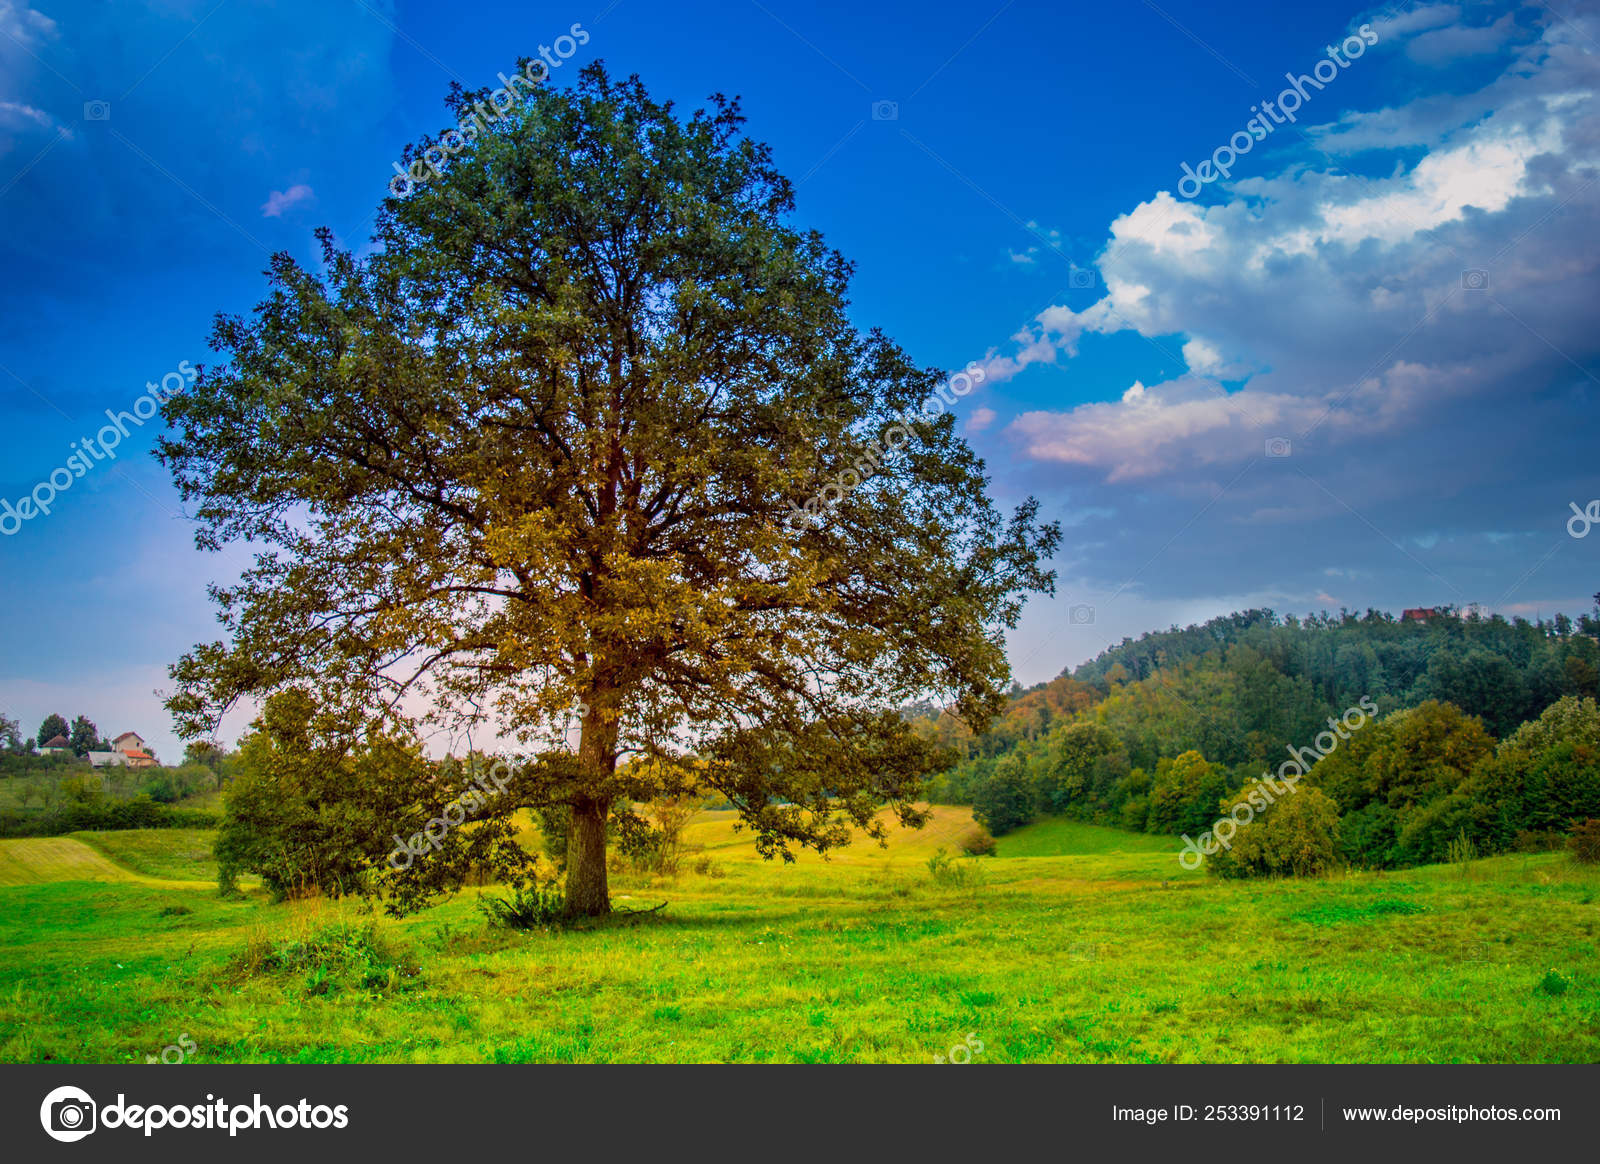 Beautiful Oak Tree Autumn Evening Day Light Clouds Mountain Forest Stock Photo Image By C Milosp86 253391112